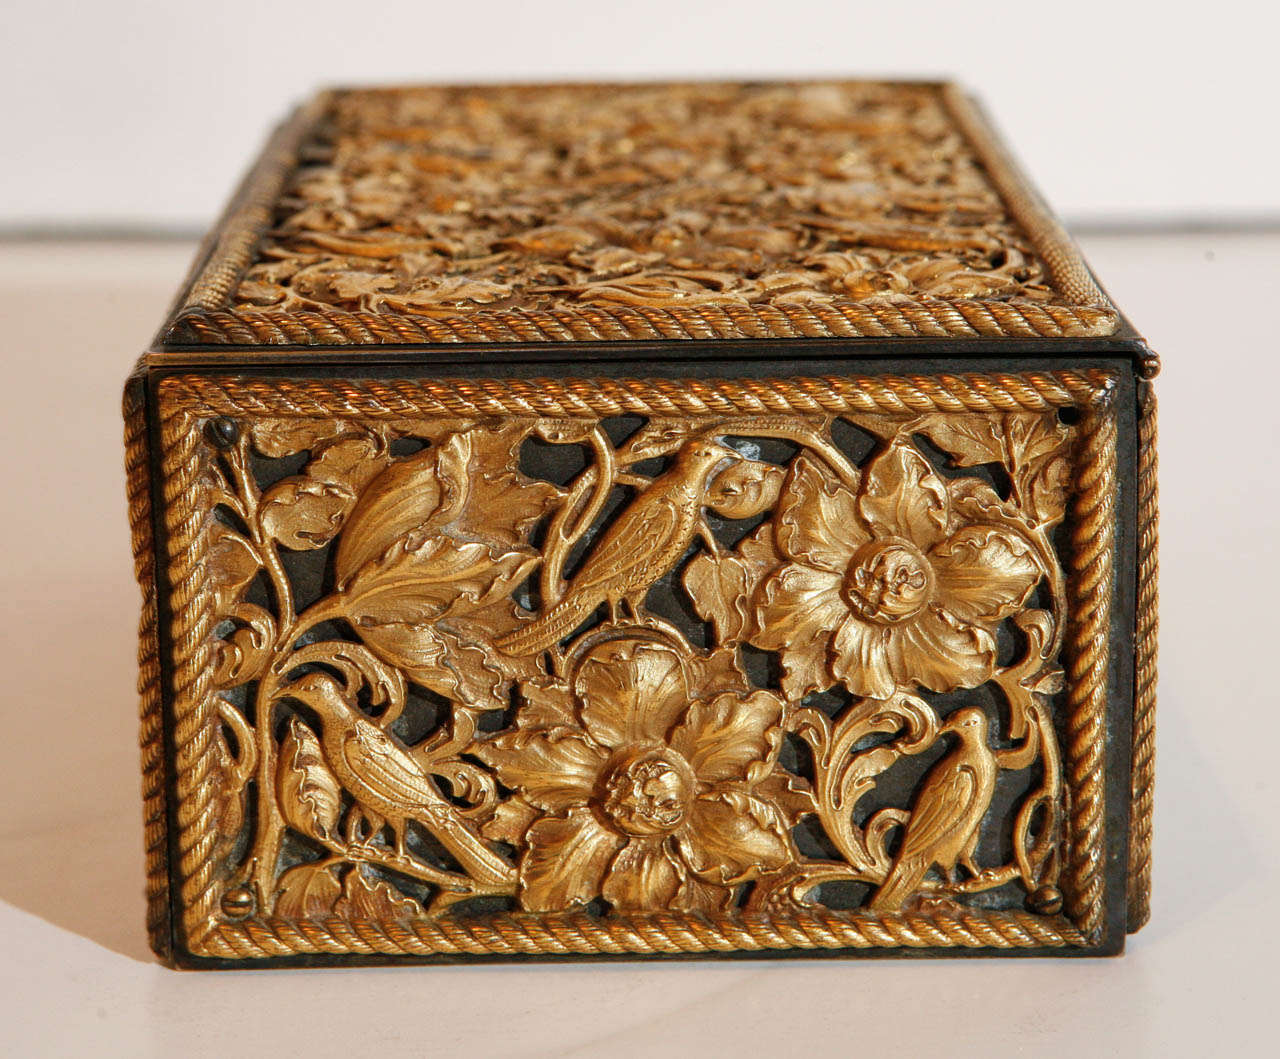 19th Century Gilt Bronze Humidor In Excellent Condition For Sale In Newport Beach, CA